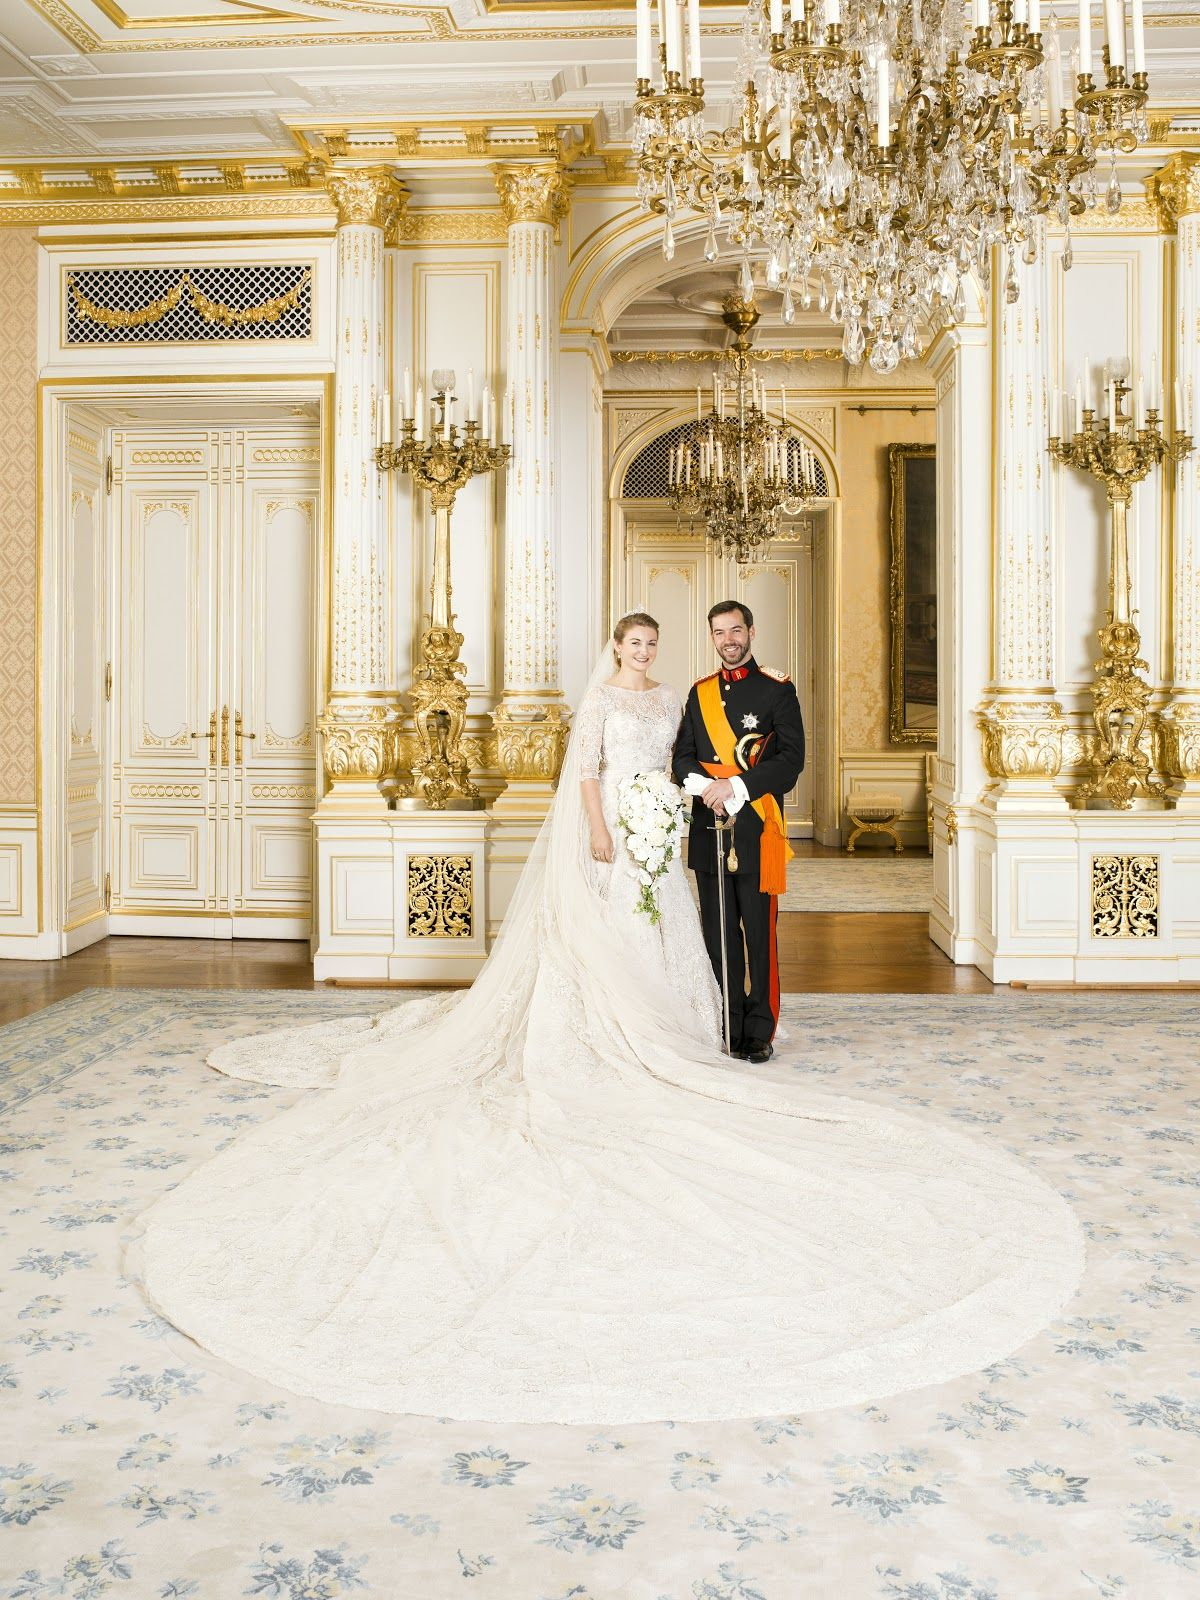 Official Portrait From Luxembourg Royal Wedding Gowns Royal Wedding Dress Royal Brides [ 1600 x 1200 Pixel ]